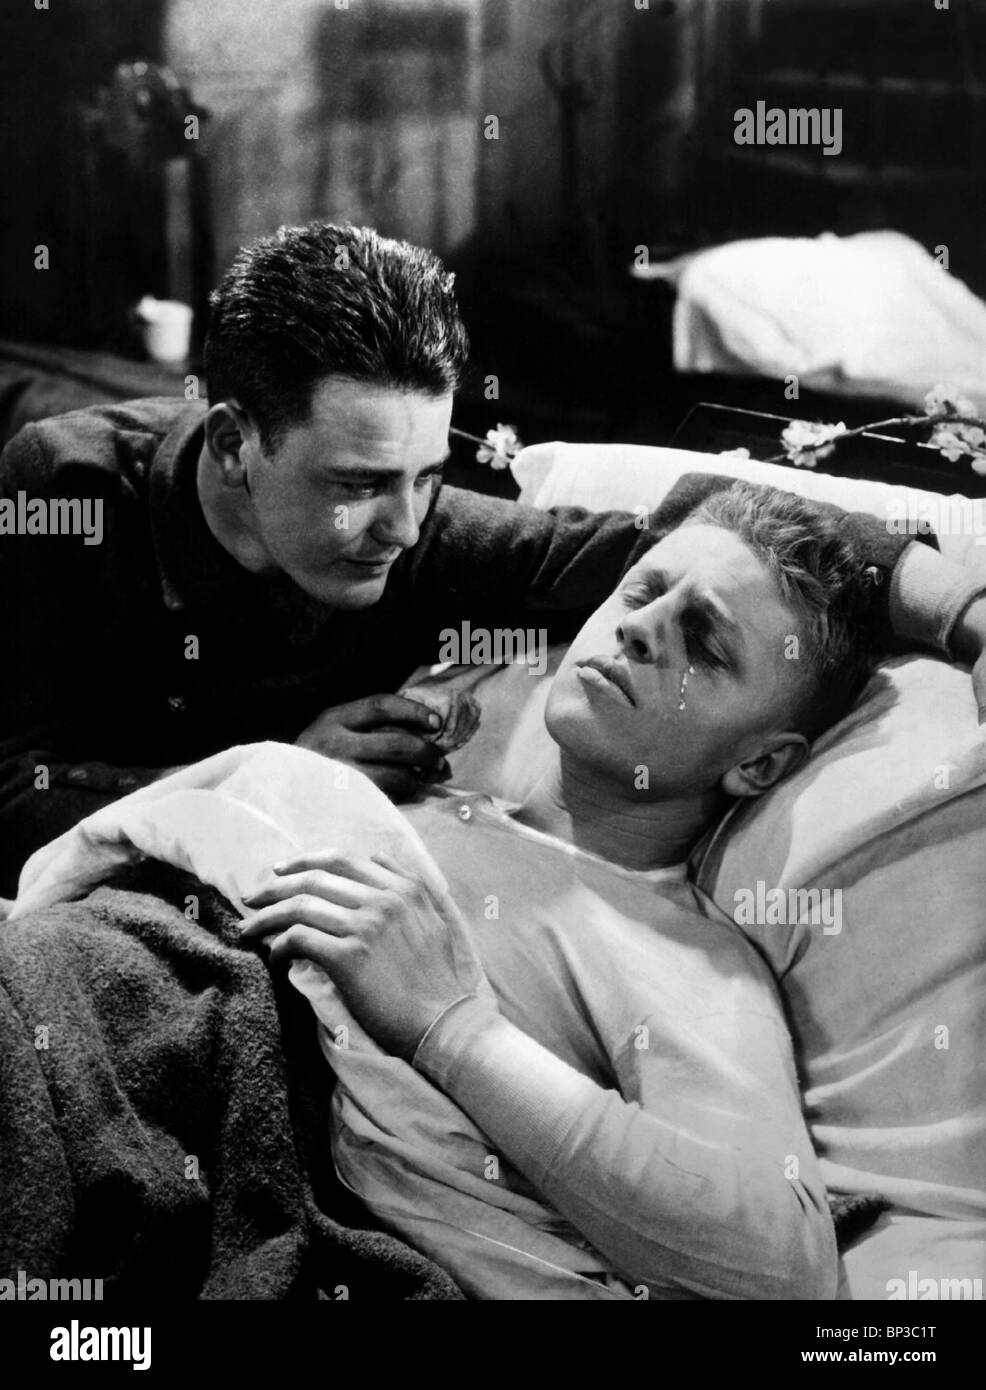 LEW AYRES ALL QUIET ON THE WESTERN FRONT (1930) - Stock Image